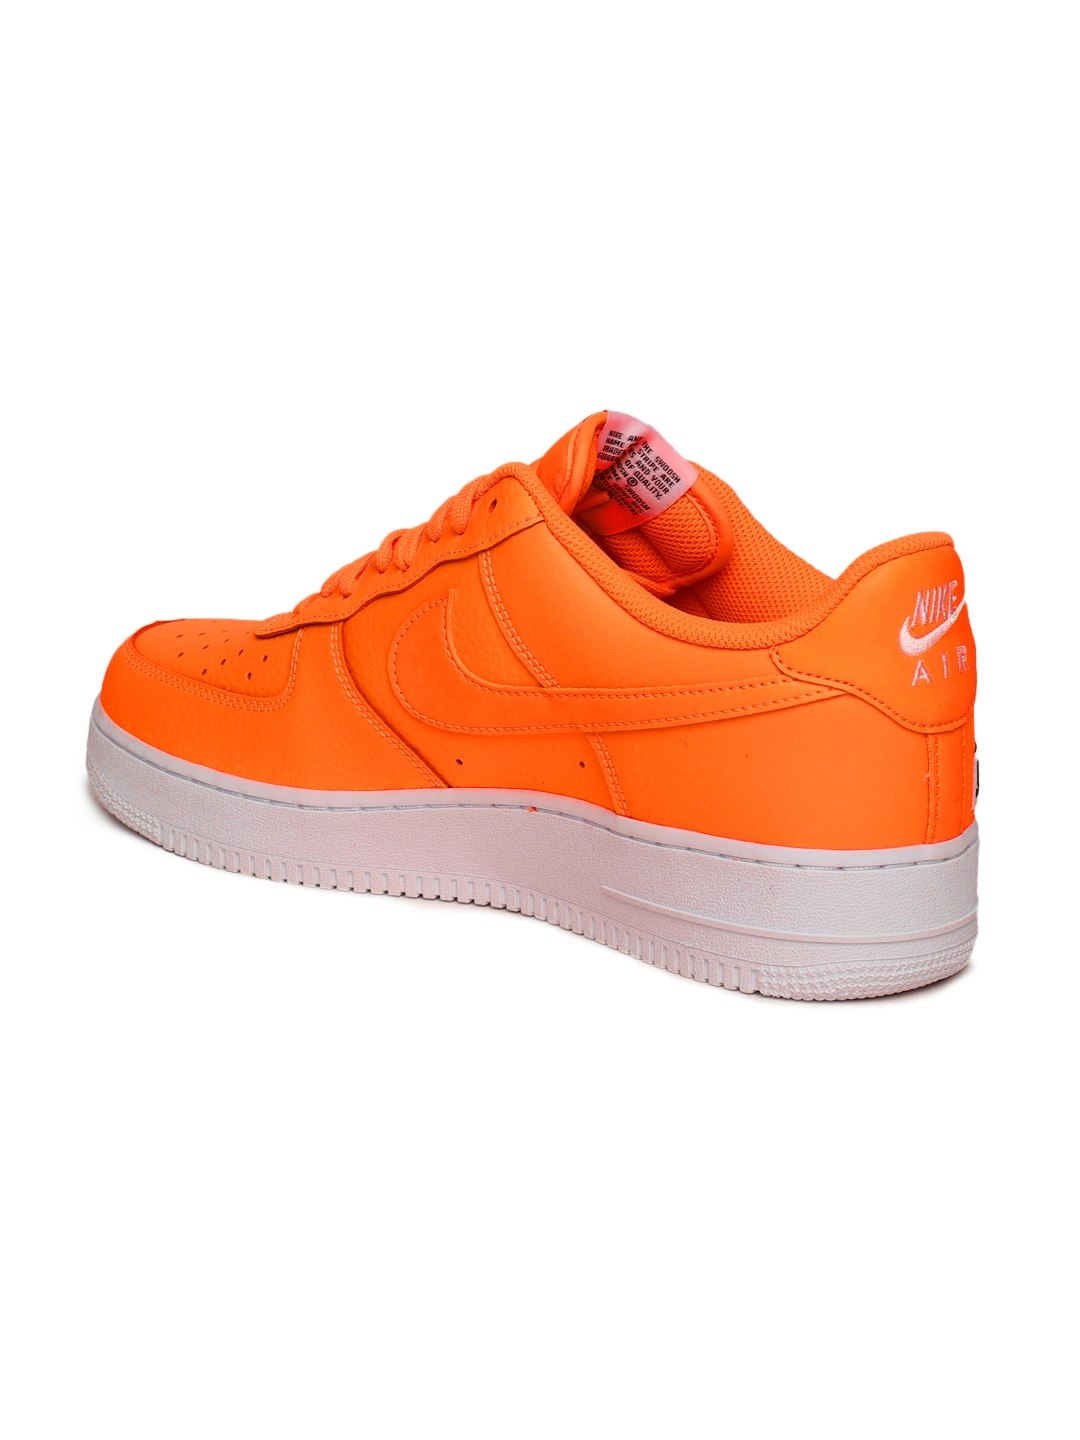 new product 74db8 fef63 Nike Men Orange Air Force 1  07 LV8 JDI Leather Sneakers